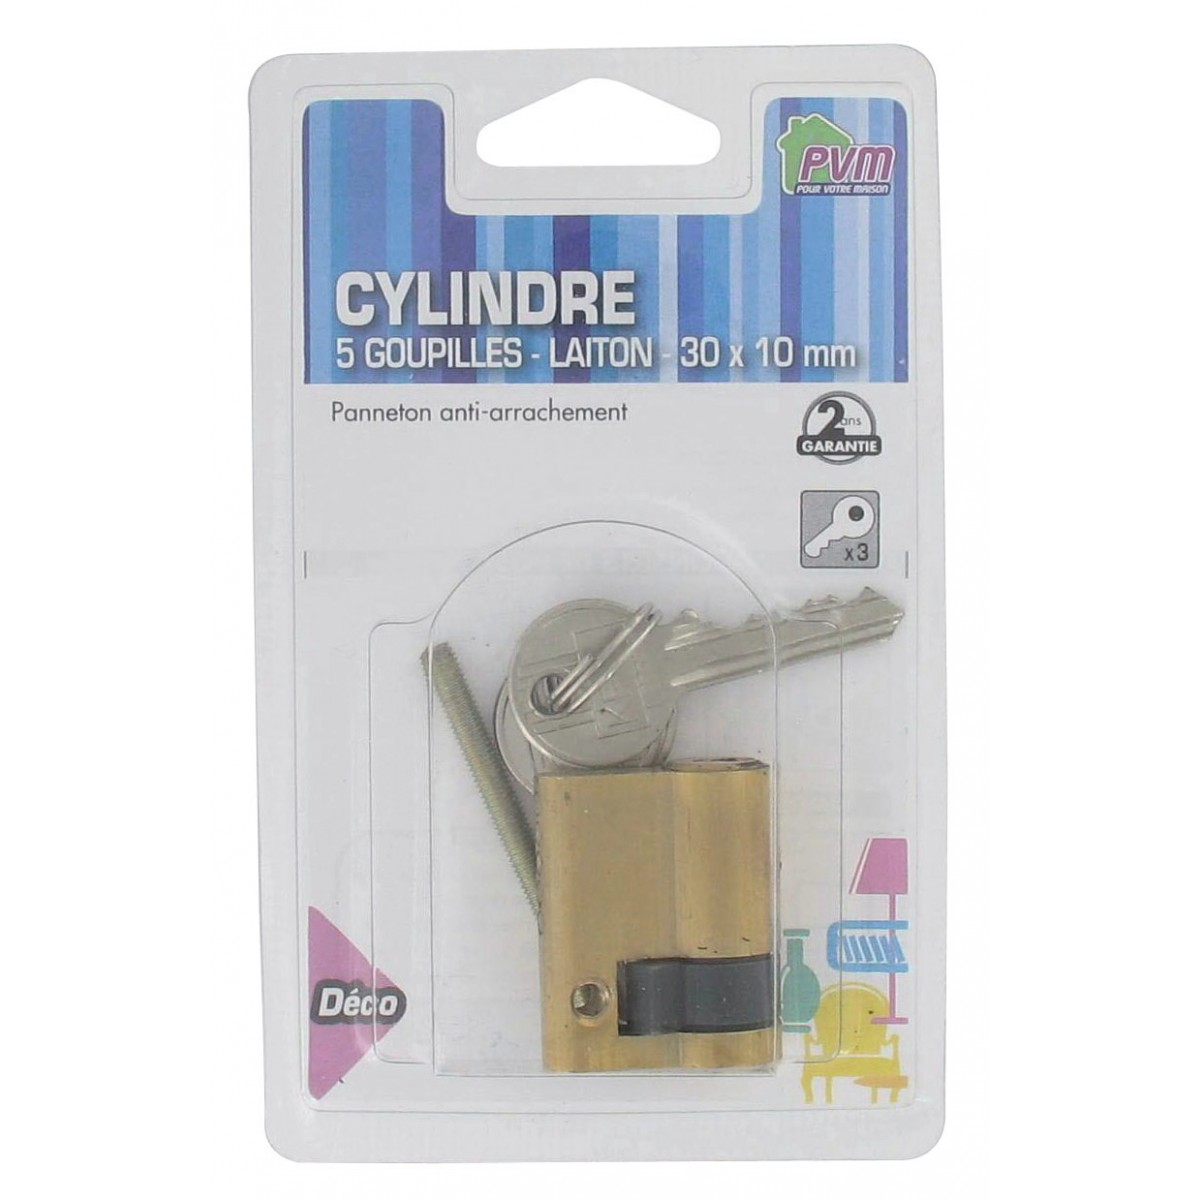 Cylindre simple laiton PVM - Dimensions 30 x 10 mm